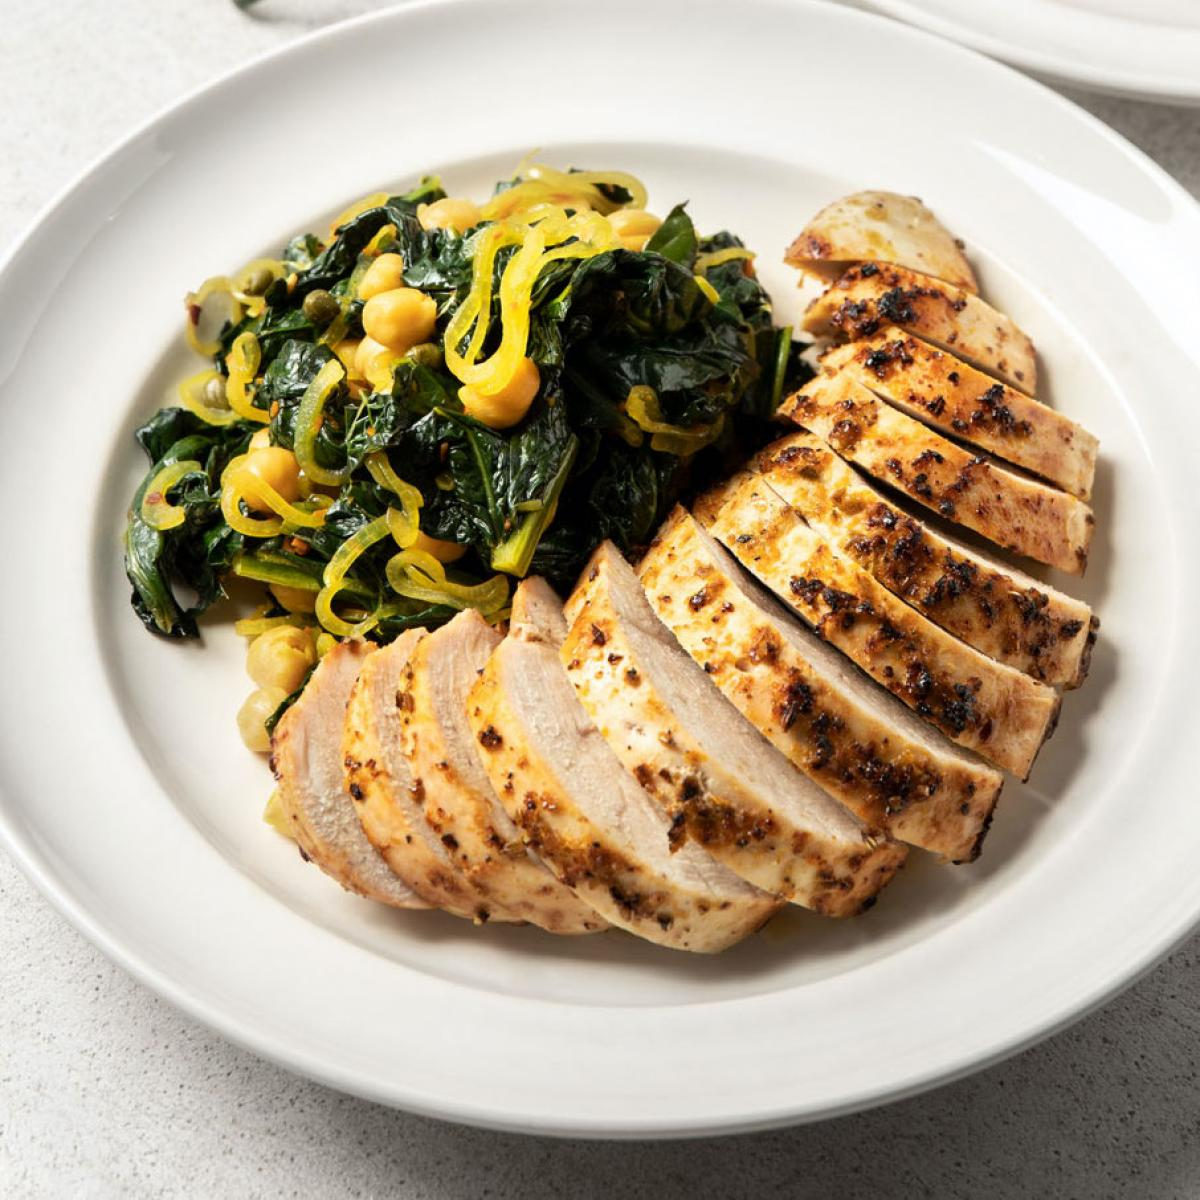 Chicken and kale recipe